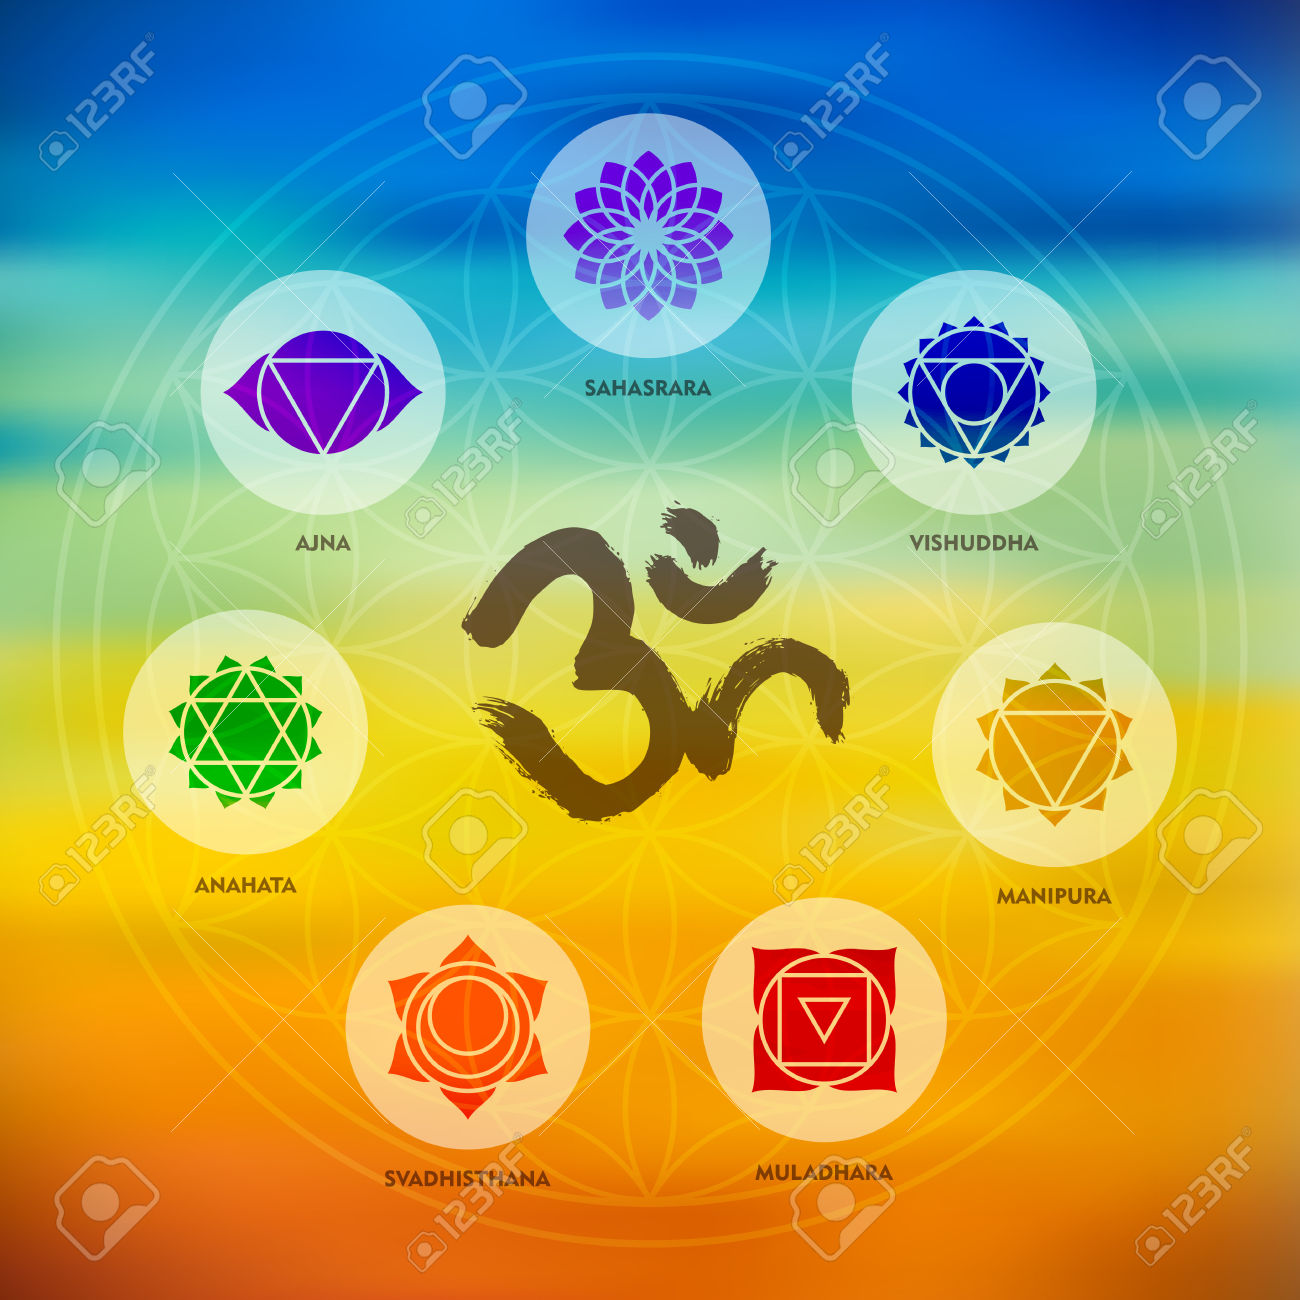 Chakra icons composition with om calligraphy and sacred geometry design on colorful blur background. EPS10 vector.